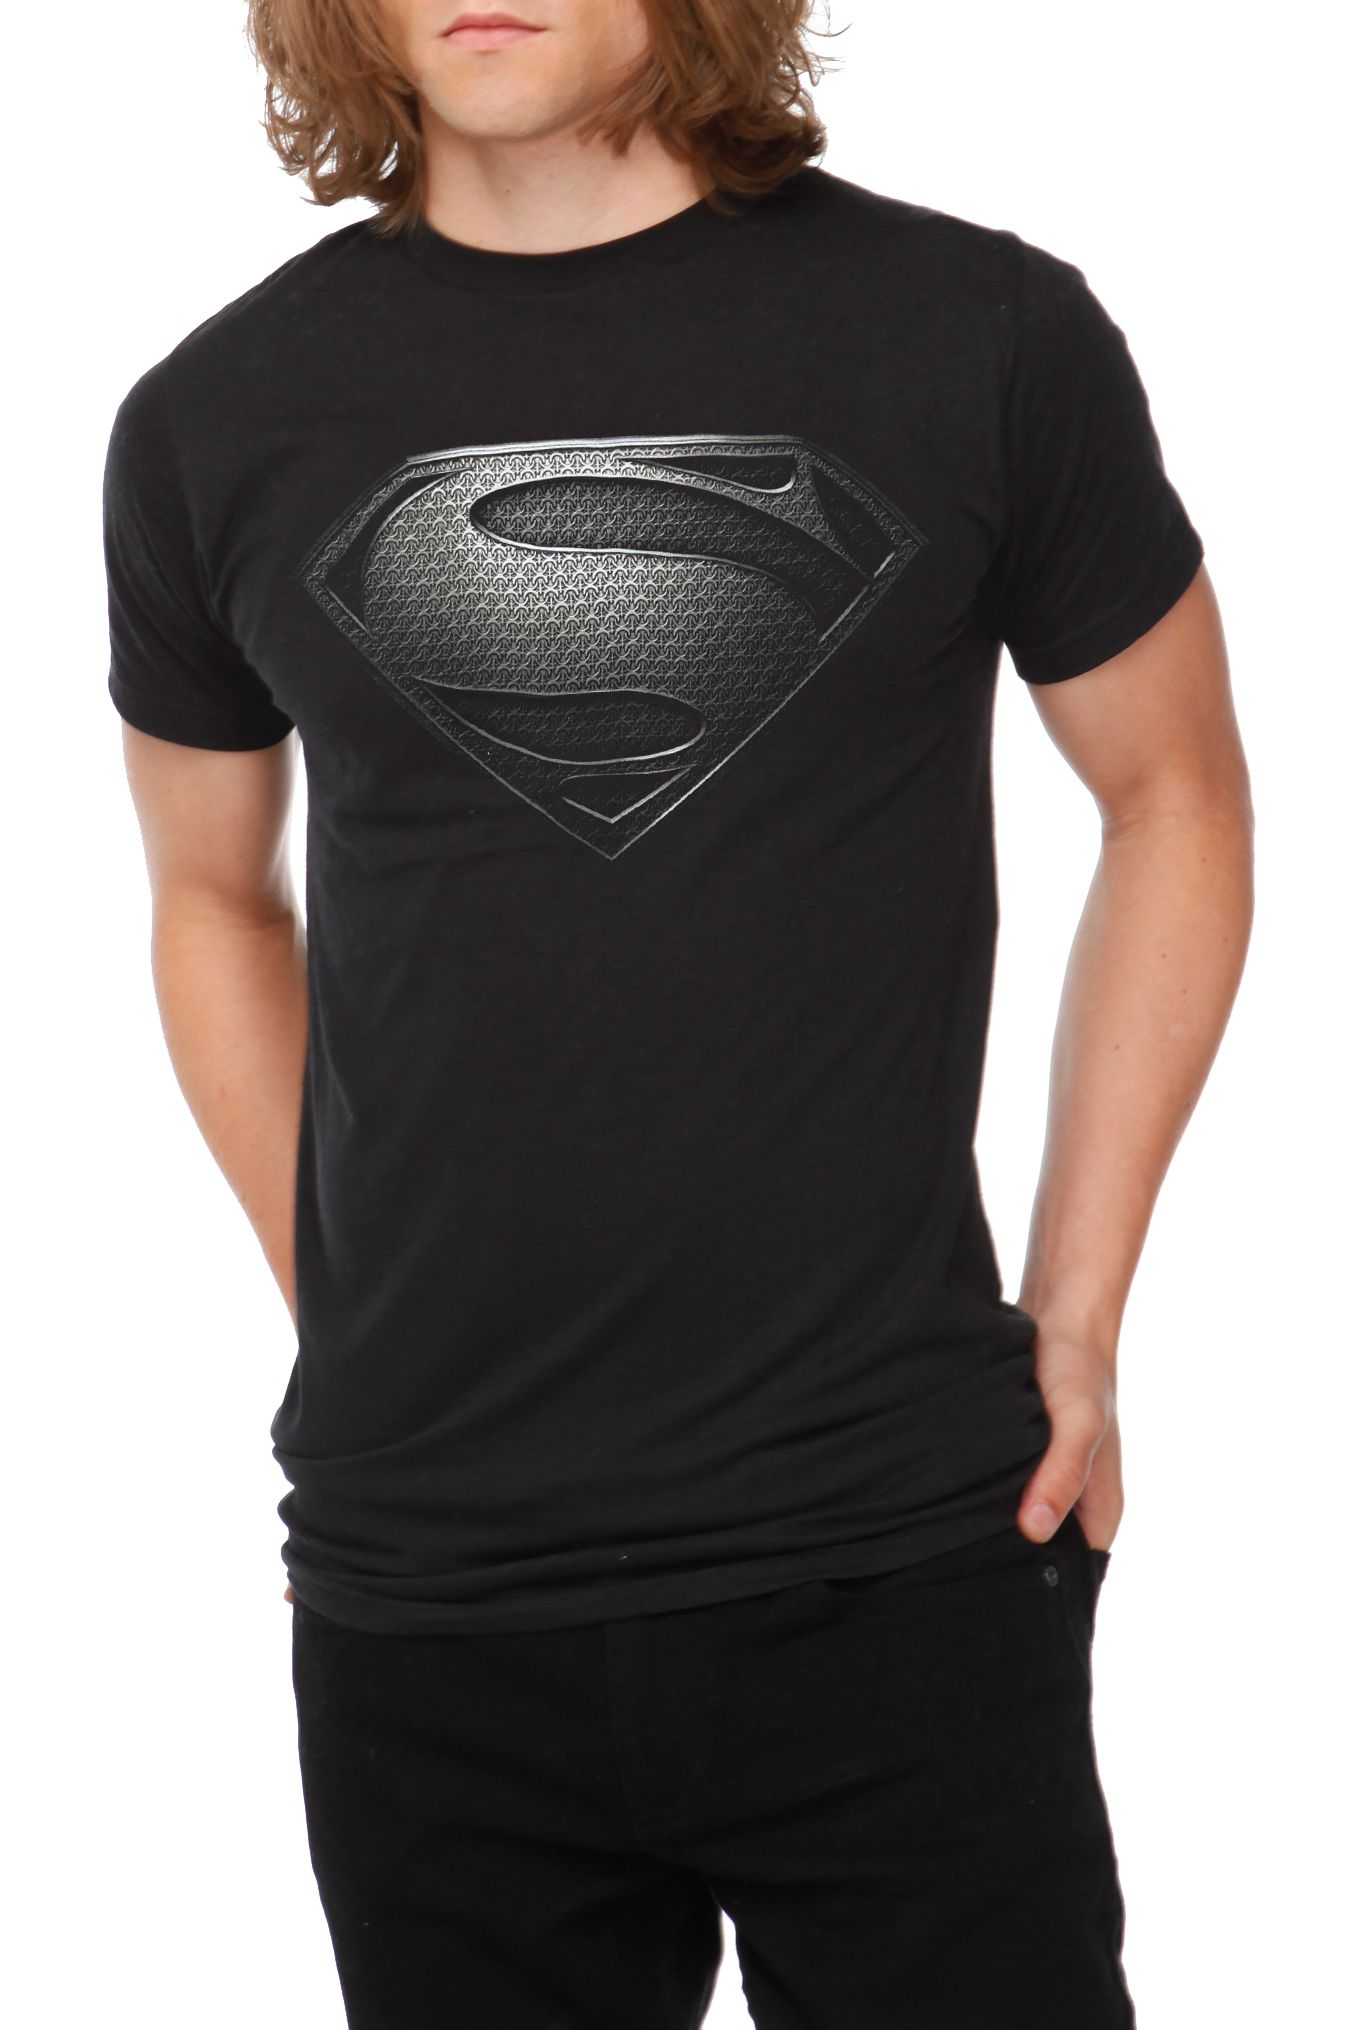 DC Comics Superman Man Of Steel Silver Logo T-Shirt  20.50  cf855e007